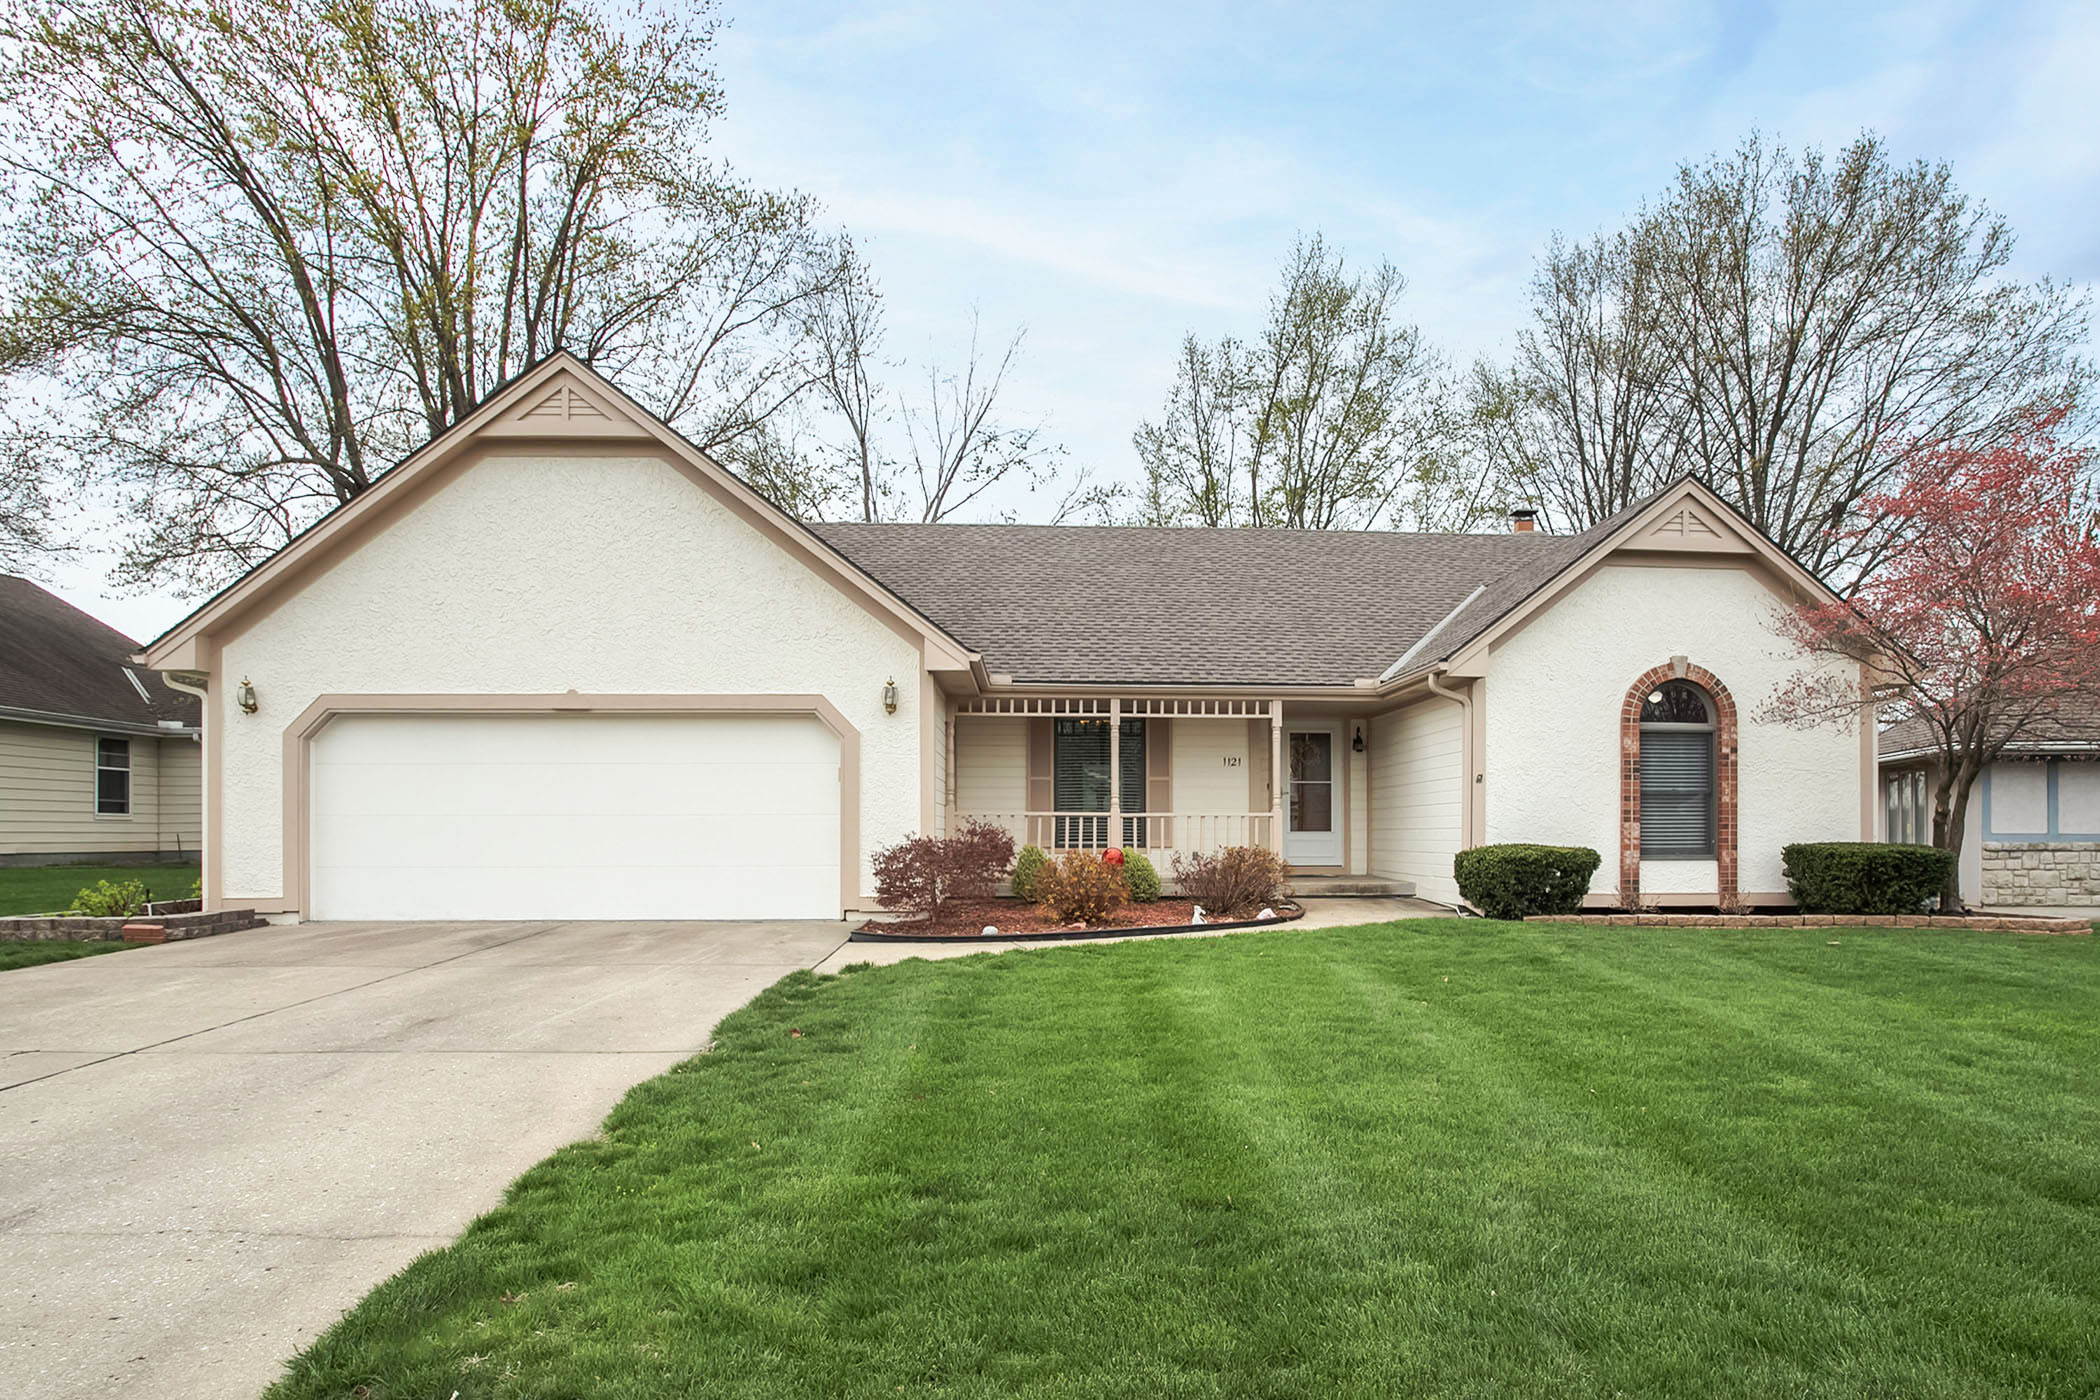 JUST LISTED ~ Wonderful True Ranch Home in Maintenance Free 55+ Community!